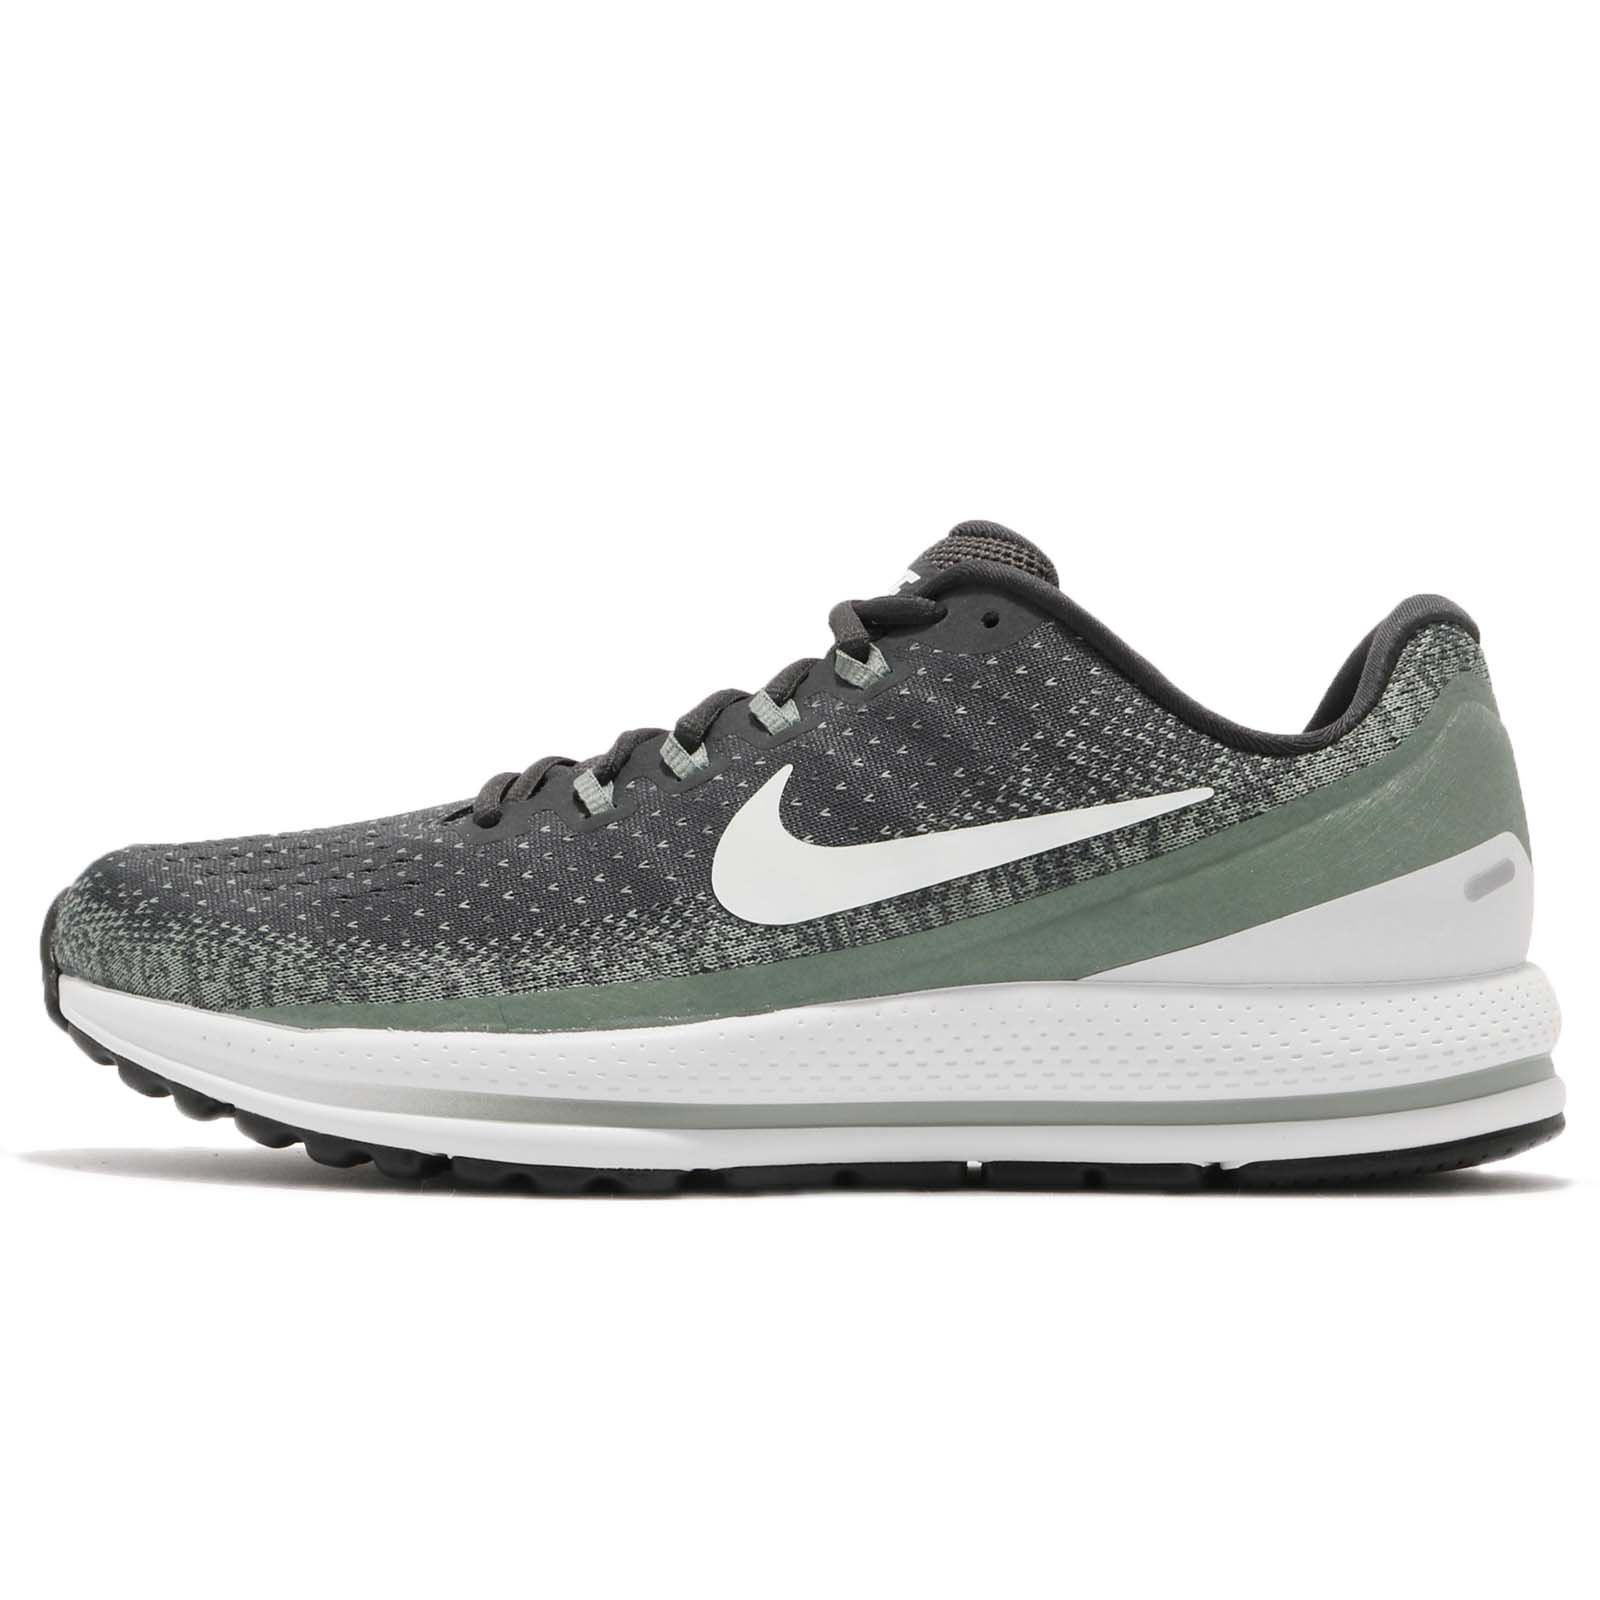 8e4098a5a186 Galleon - Nike Men s Air Zoom Vomero 13 Running Shoe Anthracite Barely  Grey-Clay Green 9.5